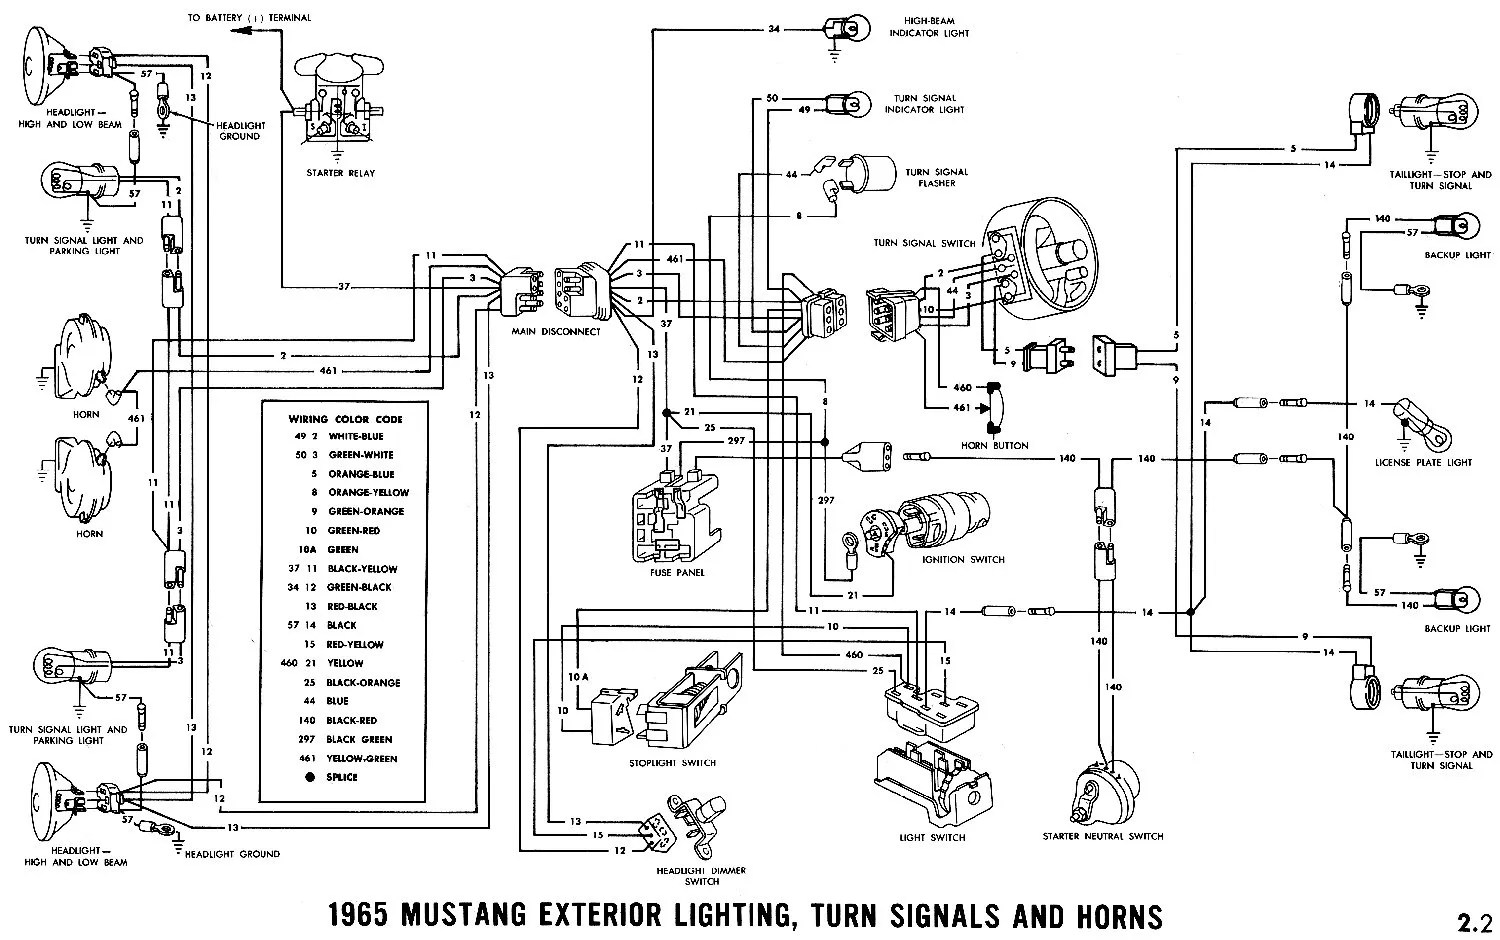 hight resolution of wiring harnes for 1965 mustang wiring diagram databasetop suggestions wiring harnes for 1965 mustang